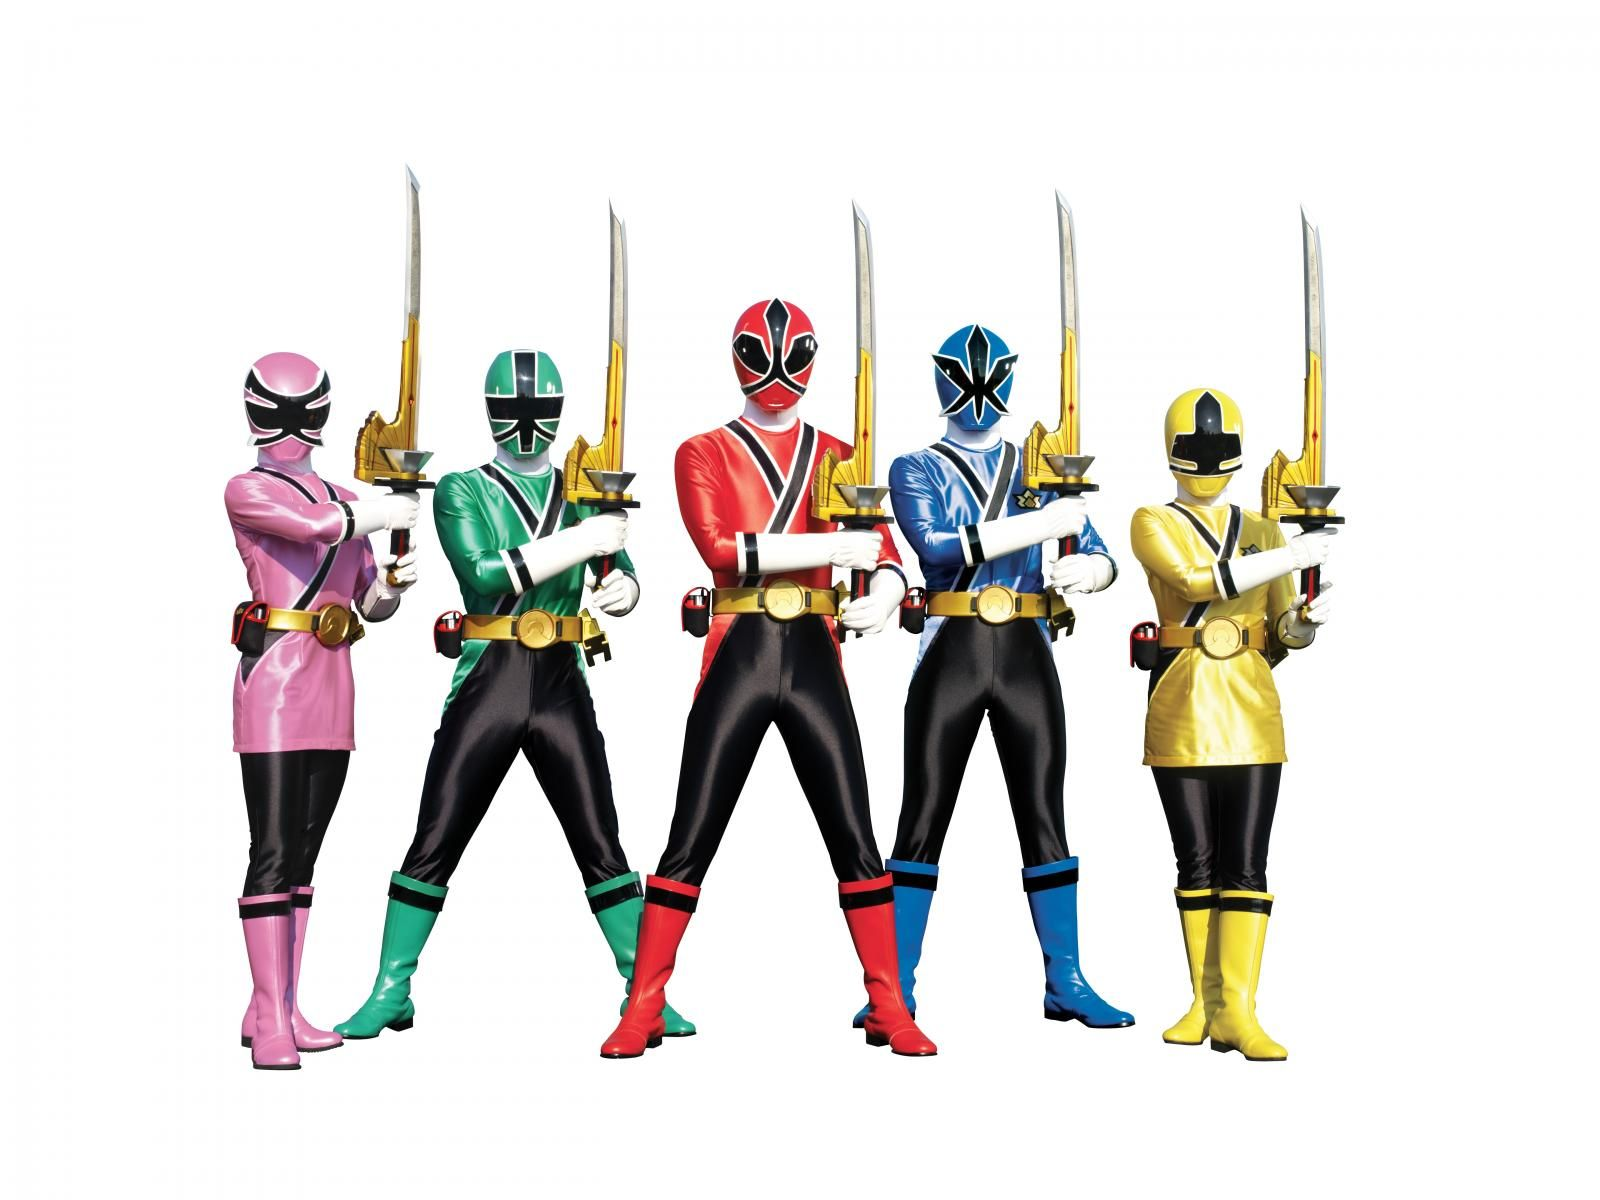 power ranger samurai - Google Search | its my party and ...